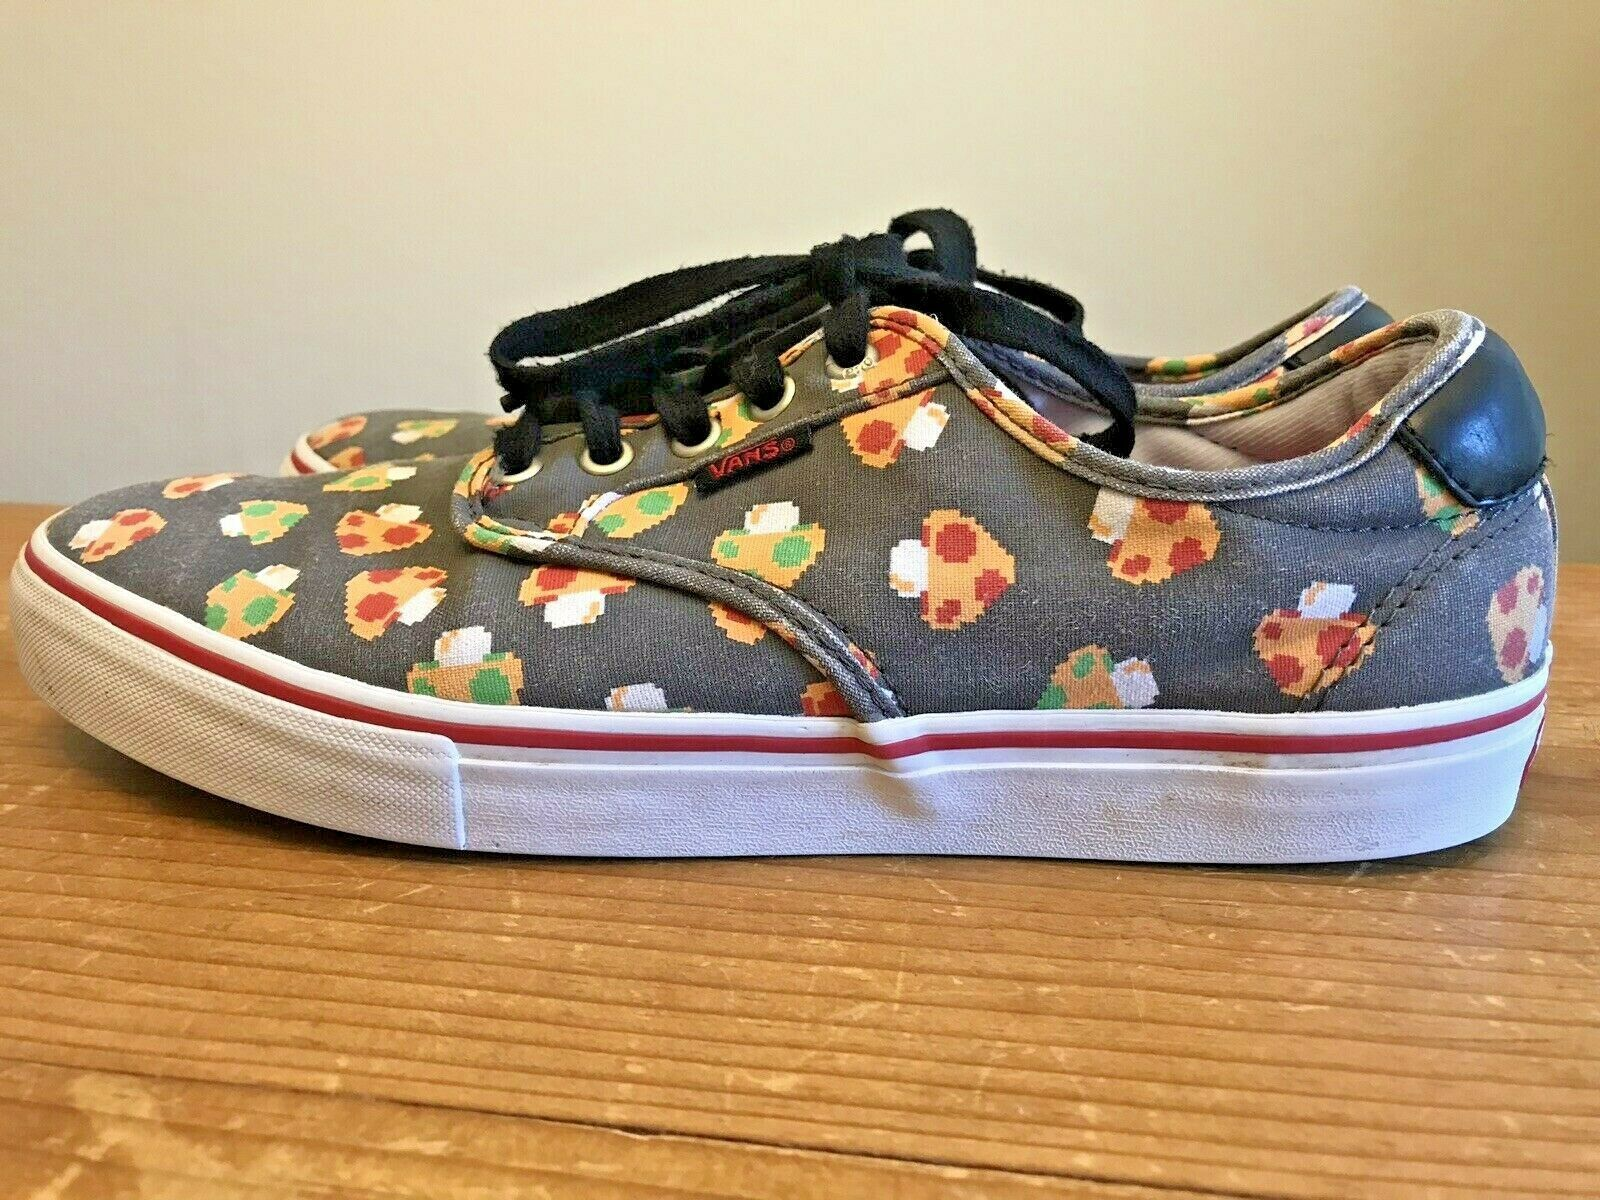 Vans Nintendo Men's Size 10 Shoes Chima Ferguson Pro Gray Mushroom Skateboard